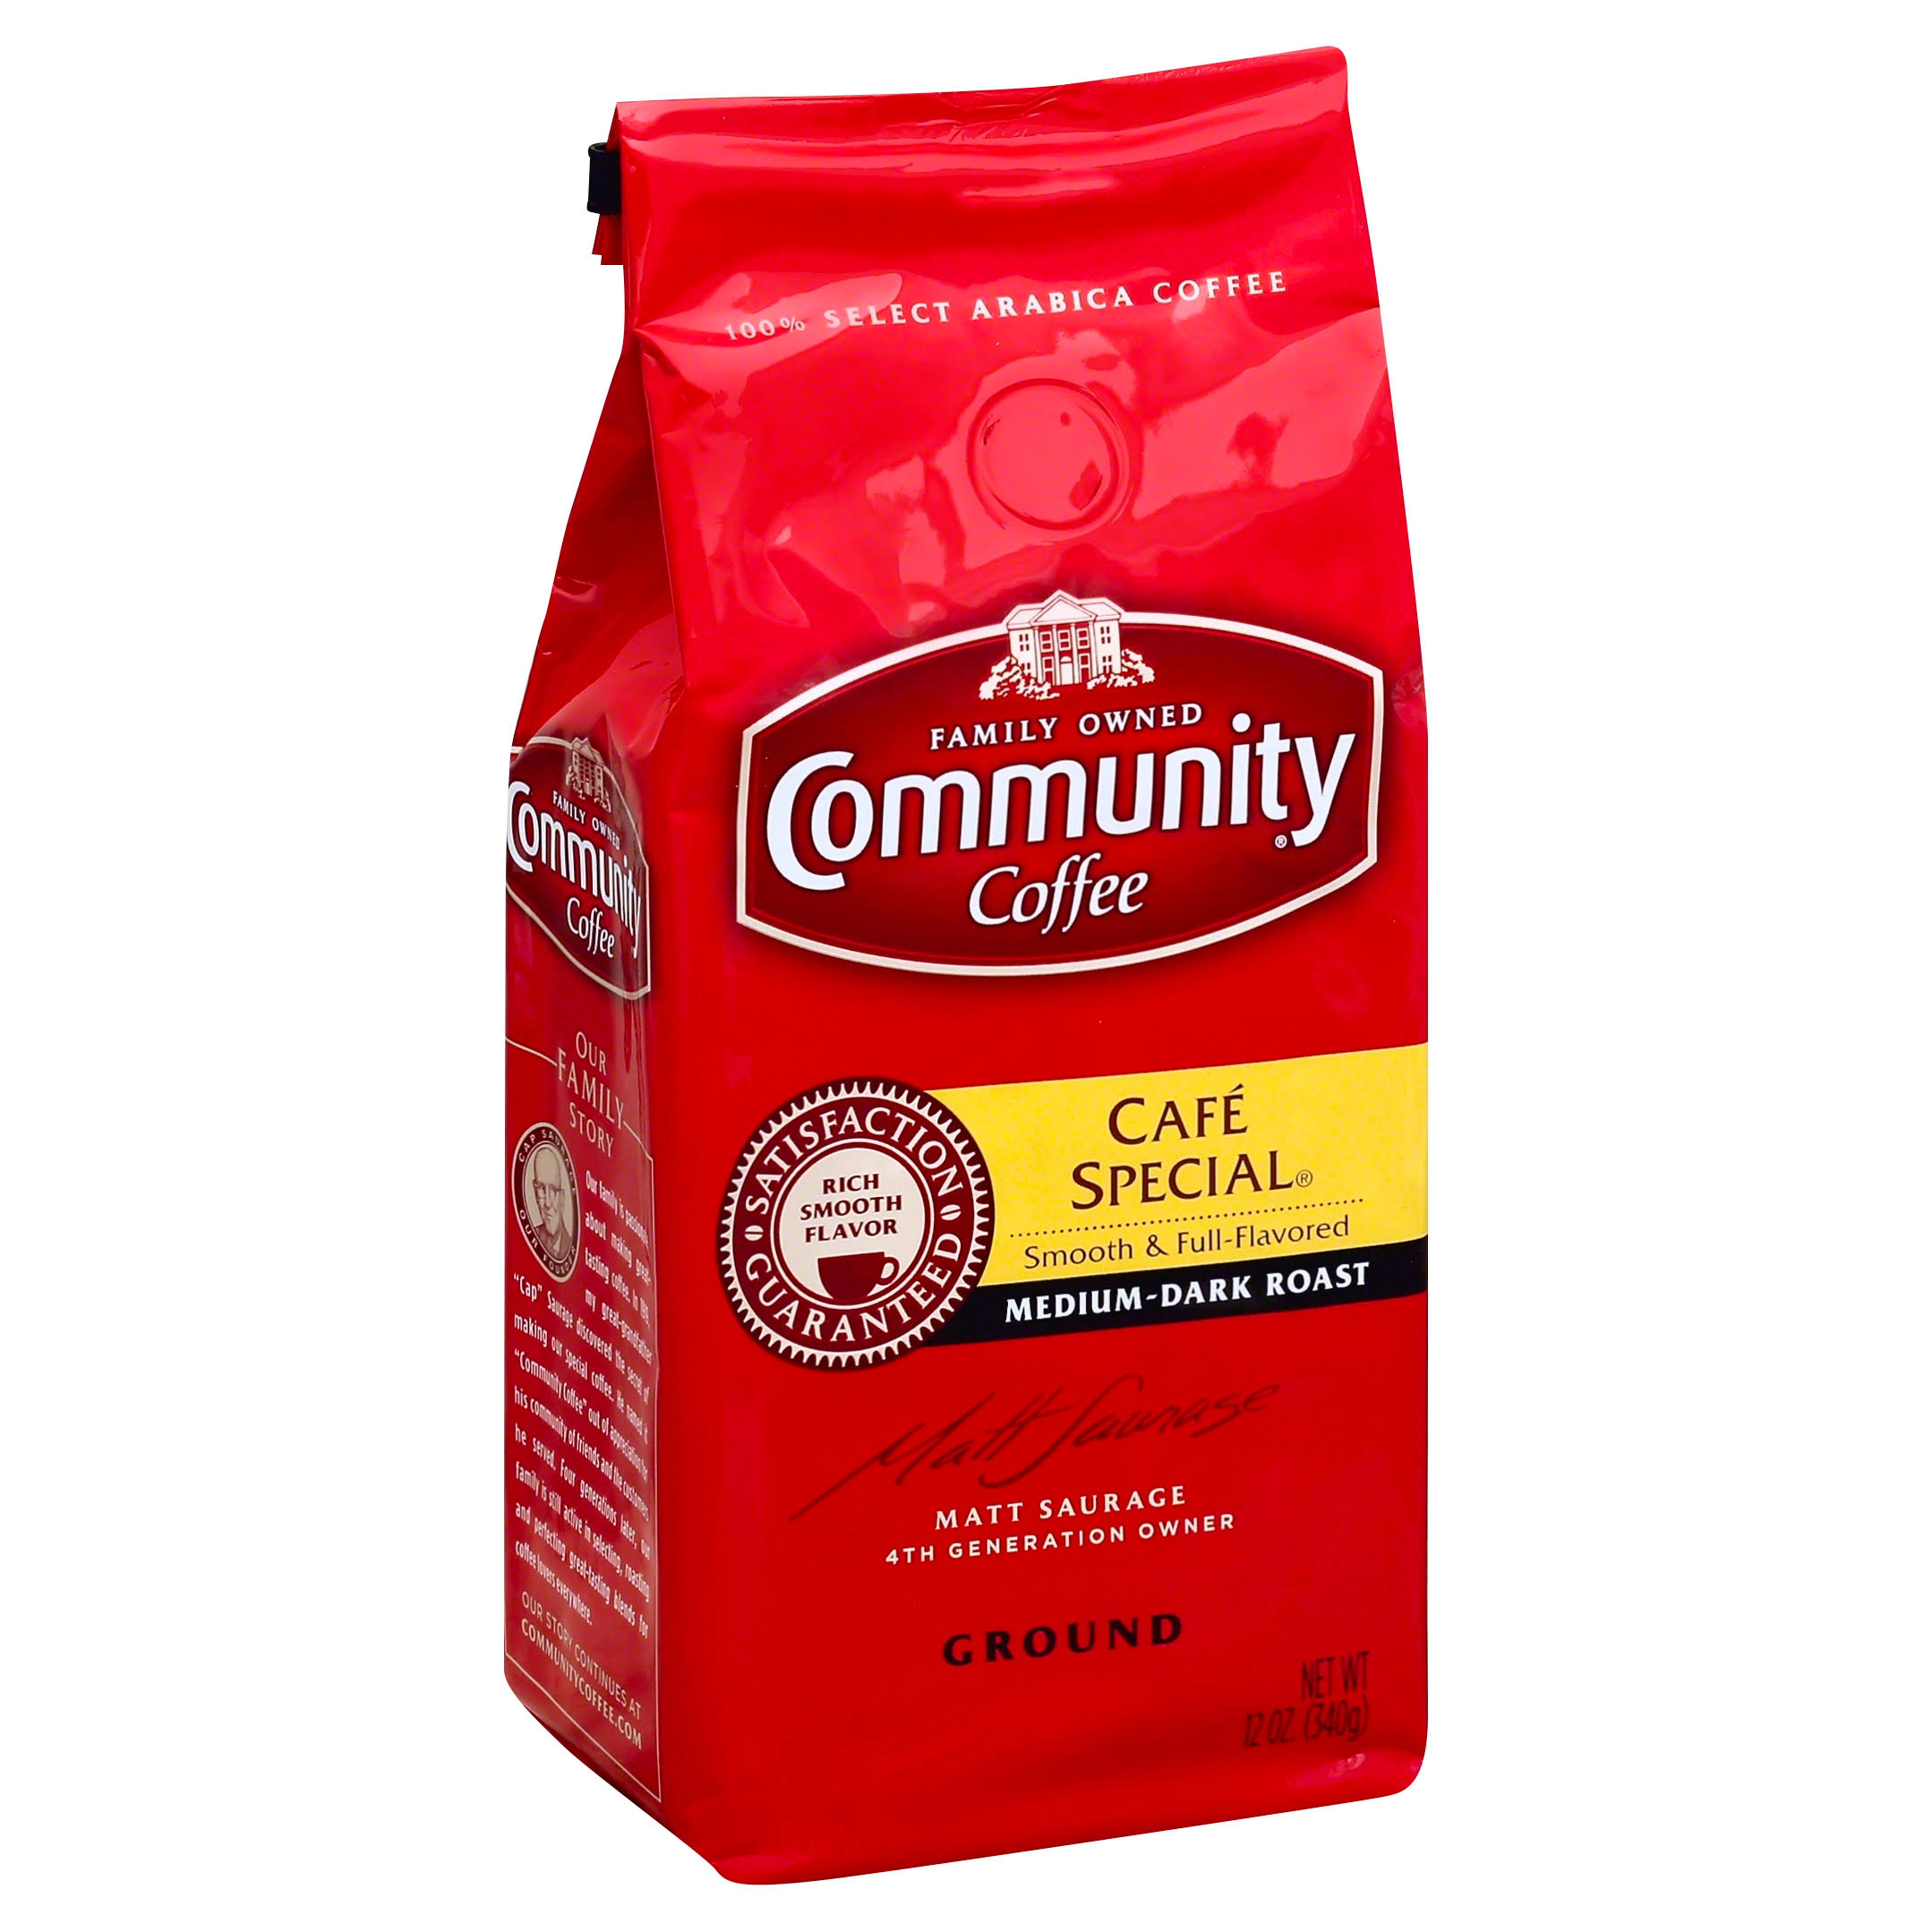 Community Coffee Ground Coffee - Cafe Special, 12oz